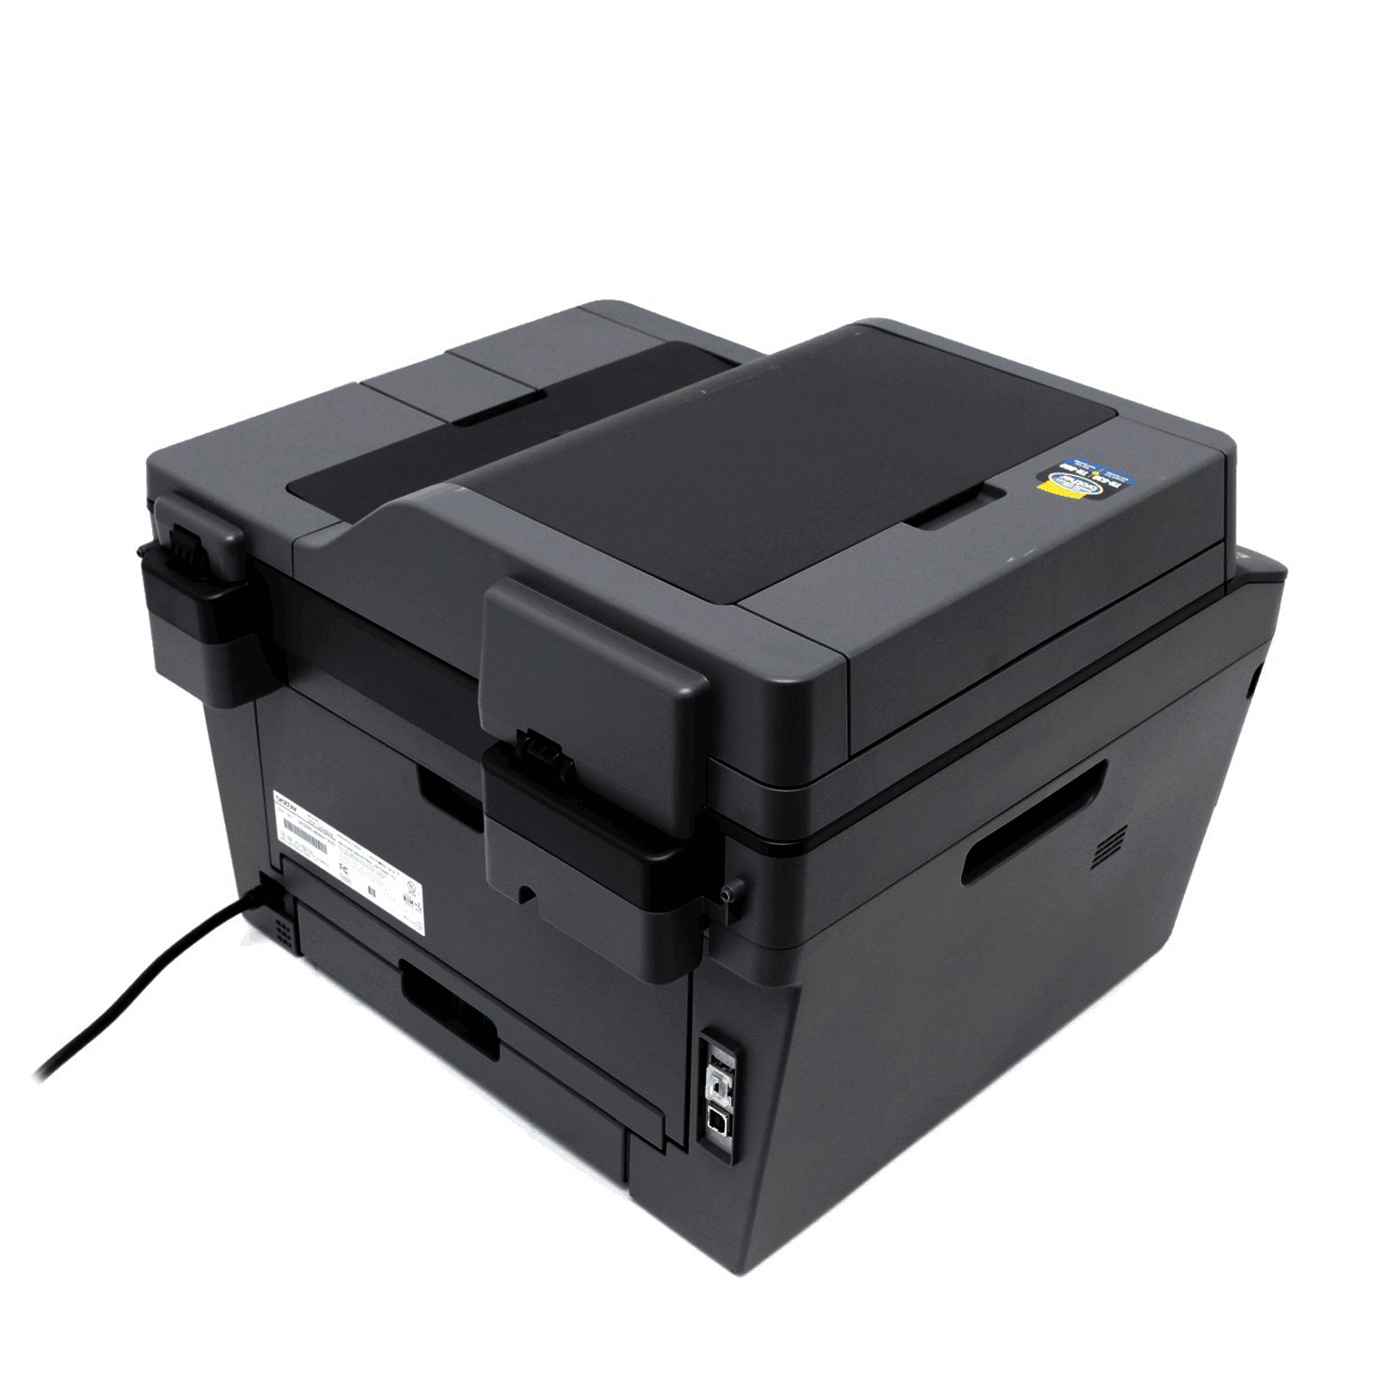 4-BROTHER-DCP-L2540DW-1